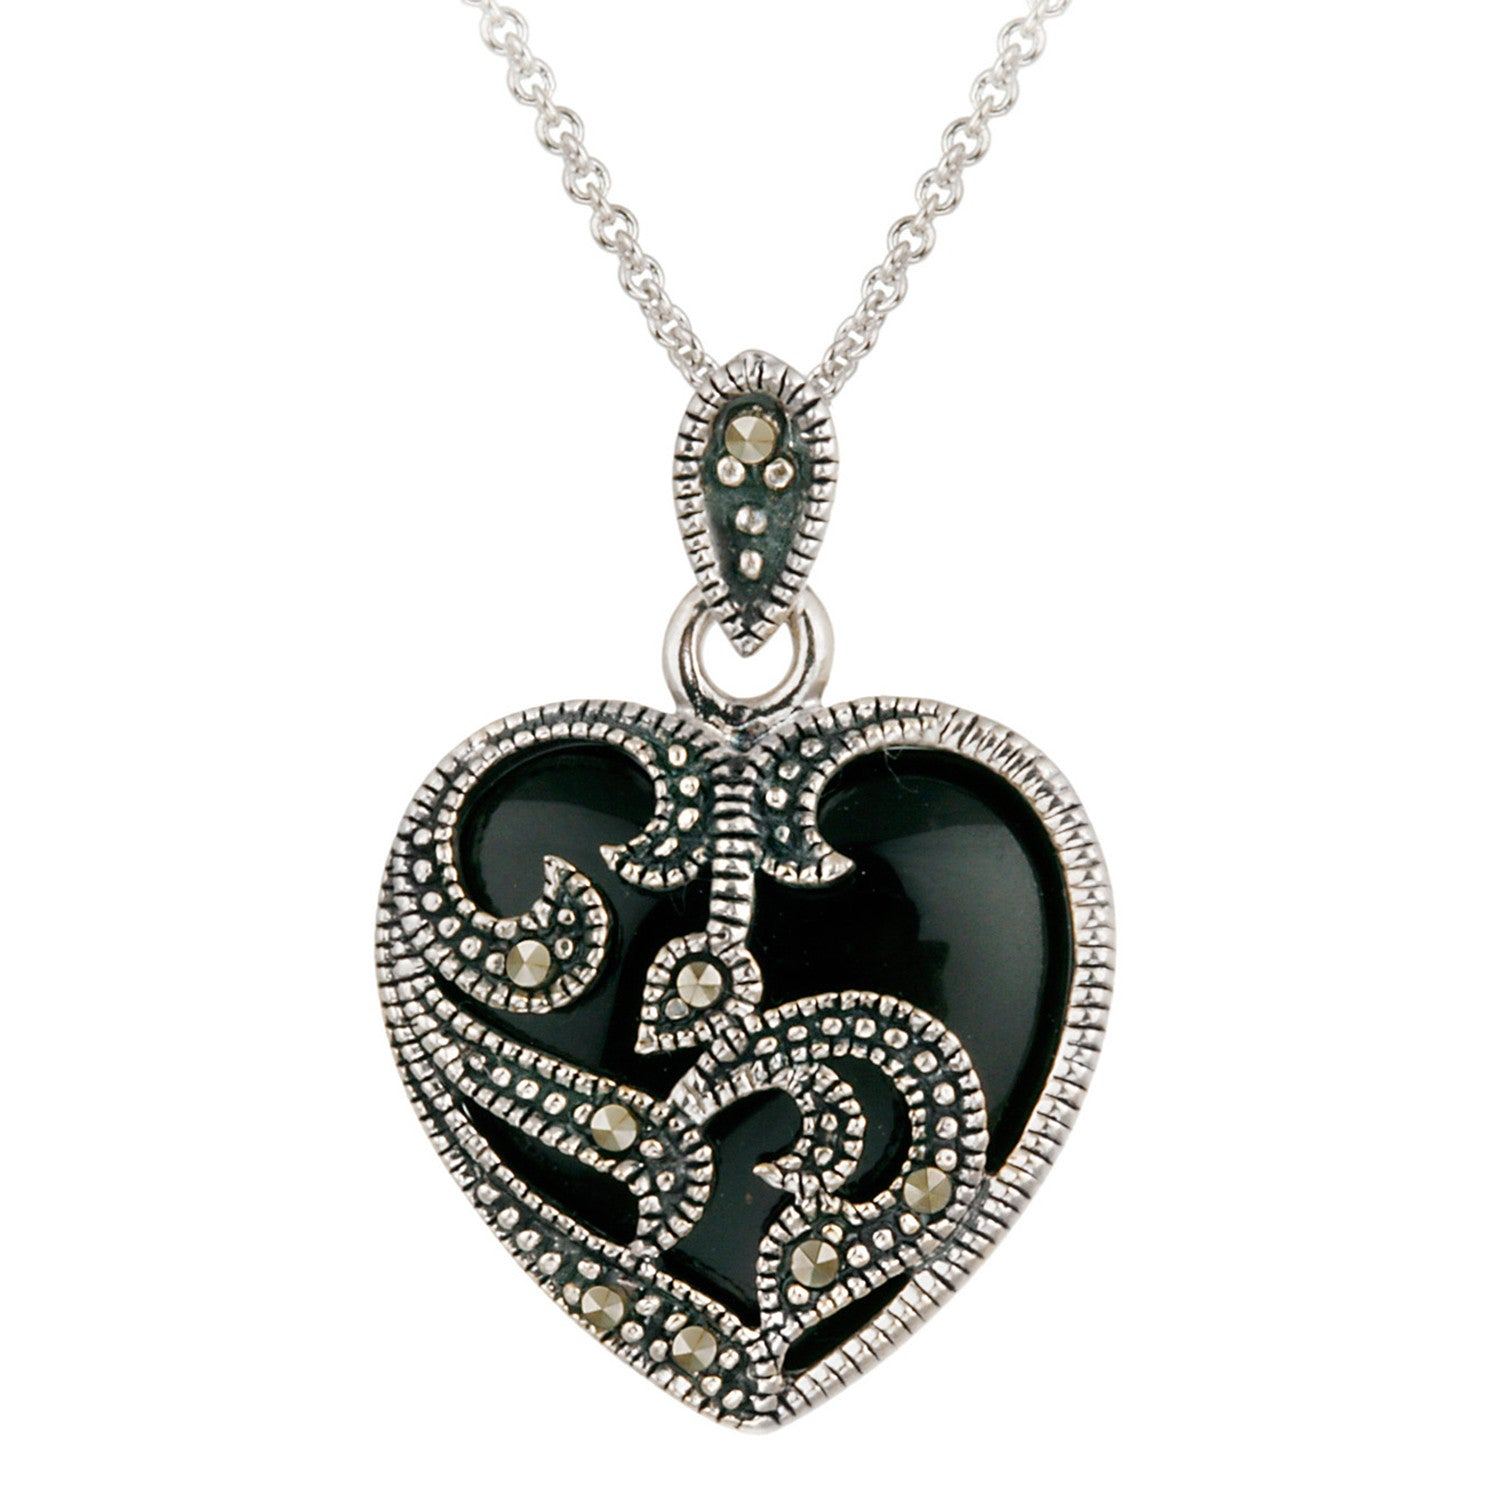 Marcasite & Gemstone Heart Sterling Silver Necklace - Onyx